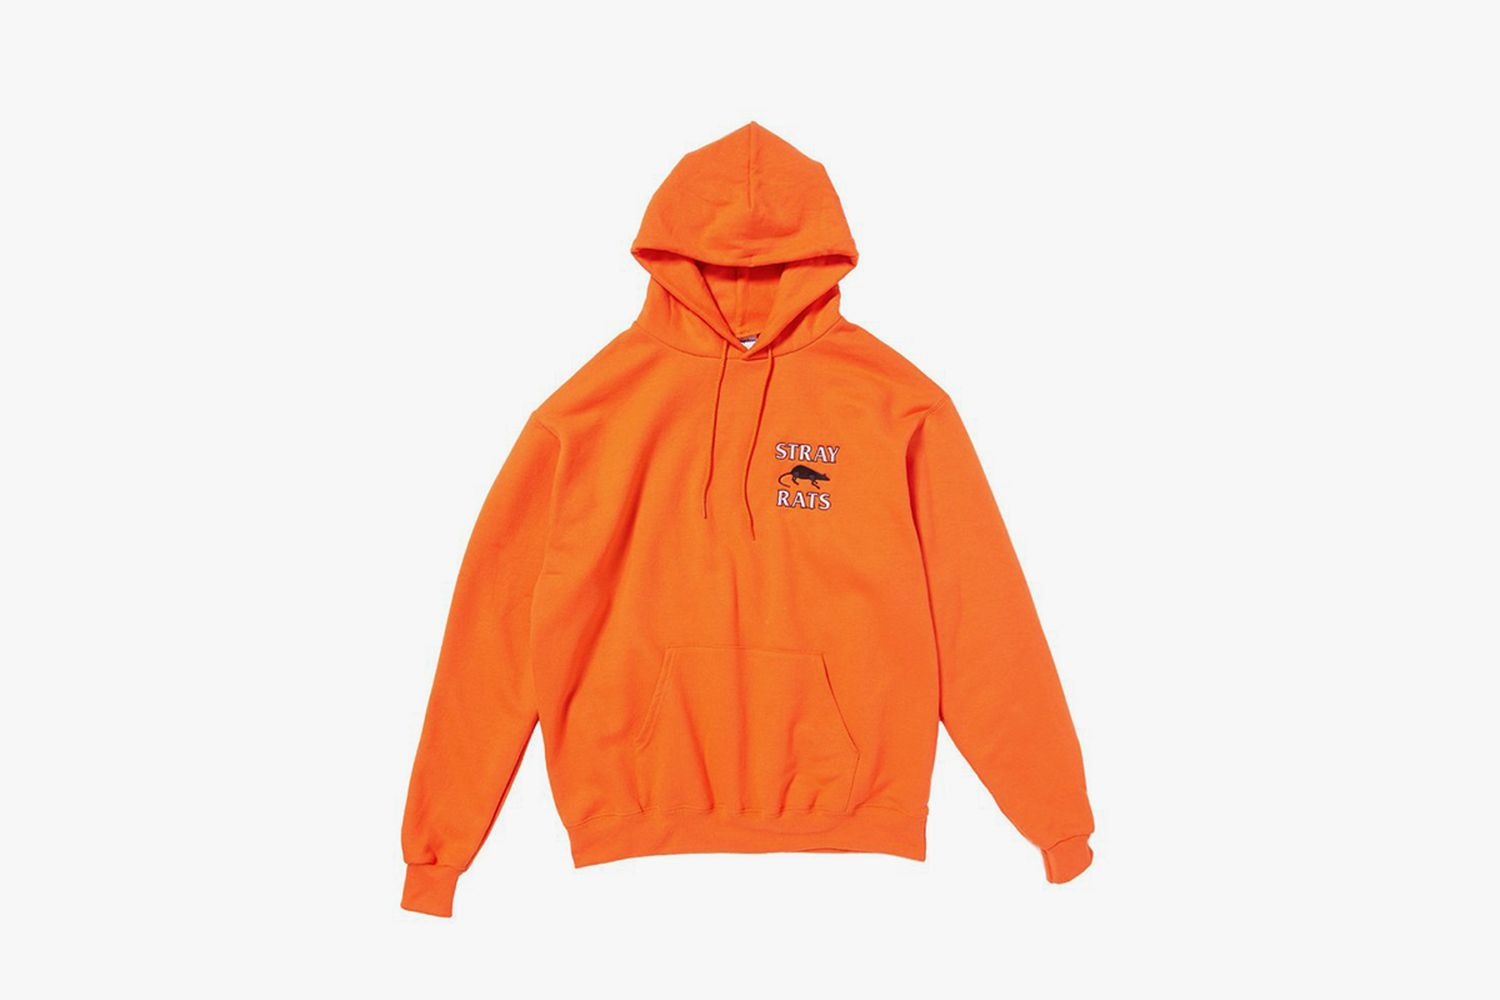 Rodenticide Hoodie